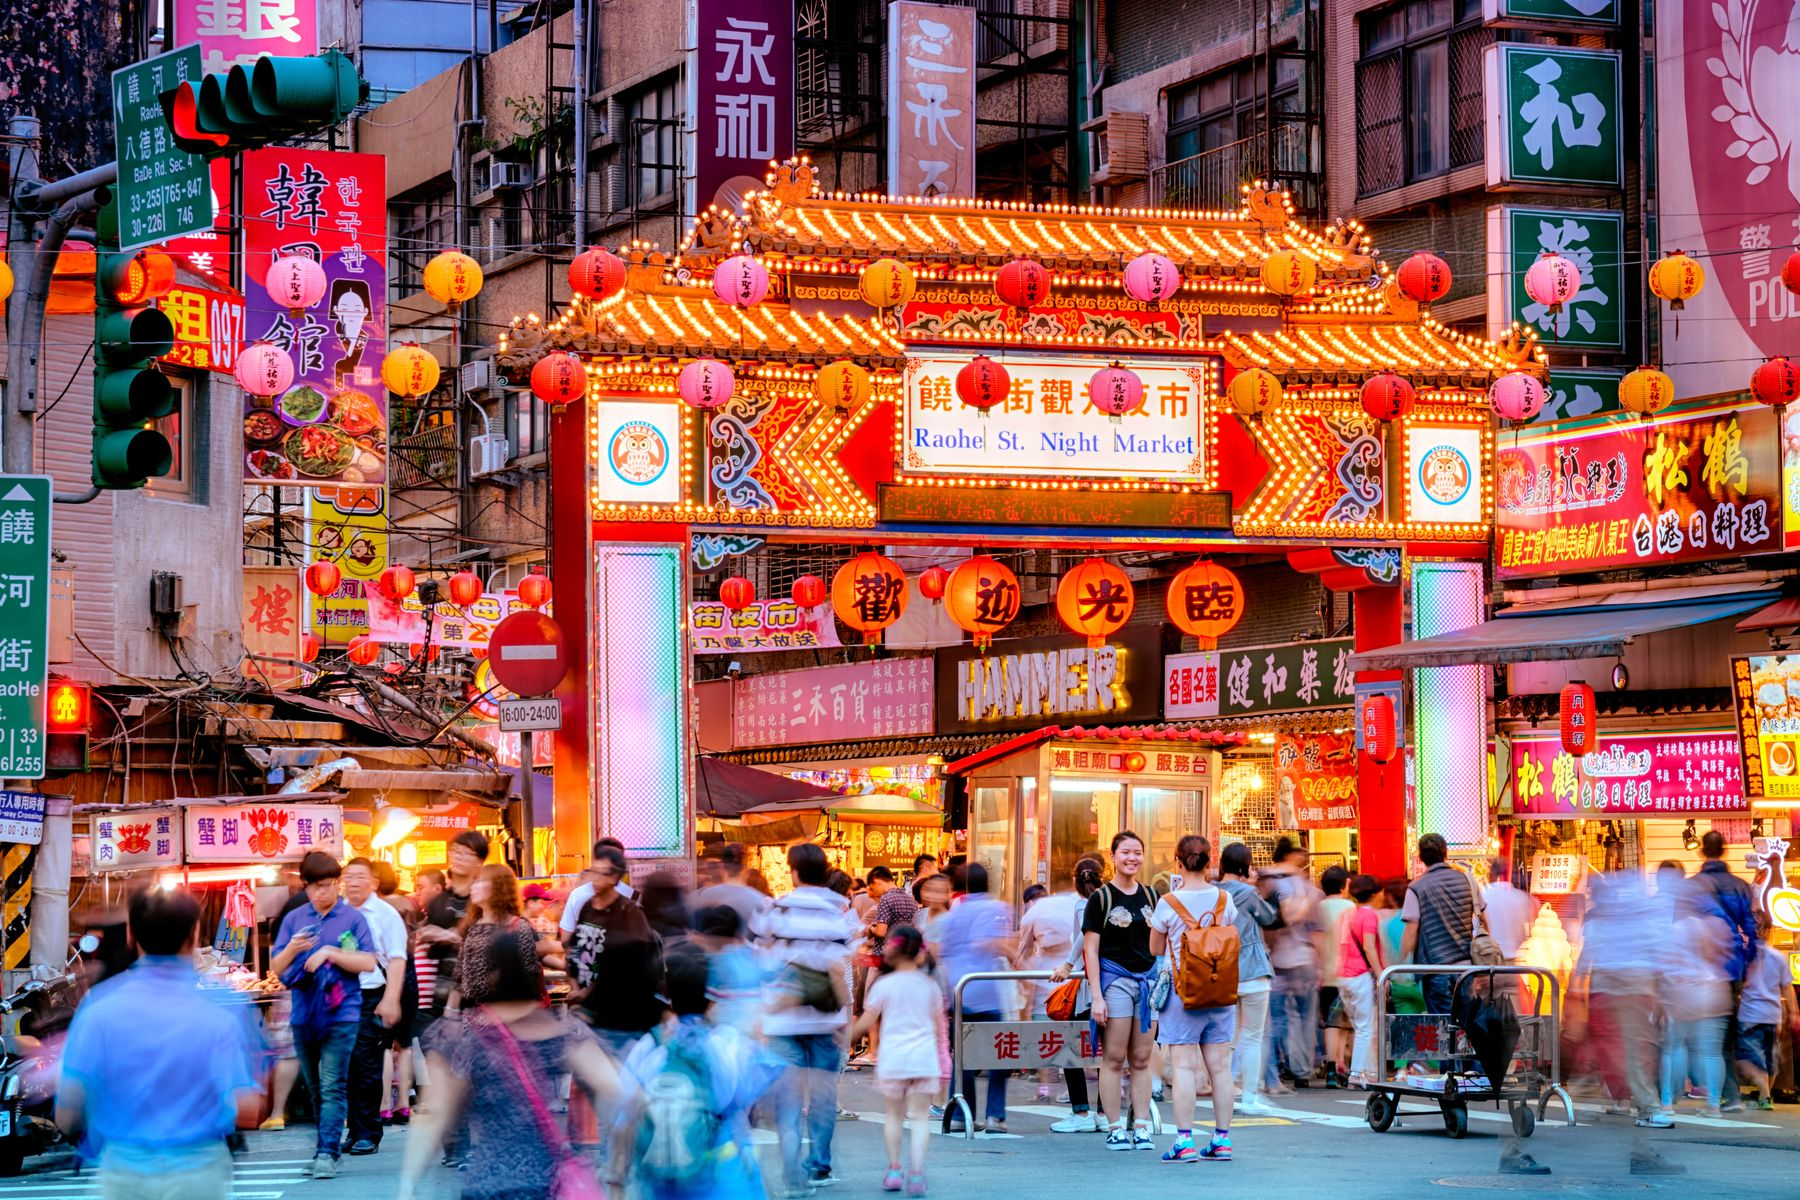 Night market entrance in Taipei, Taiwan, the most gay-friendly city in Asia